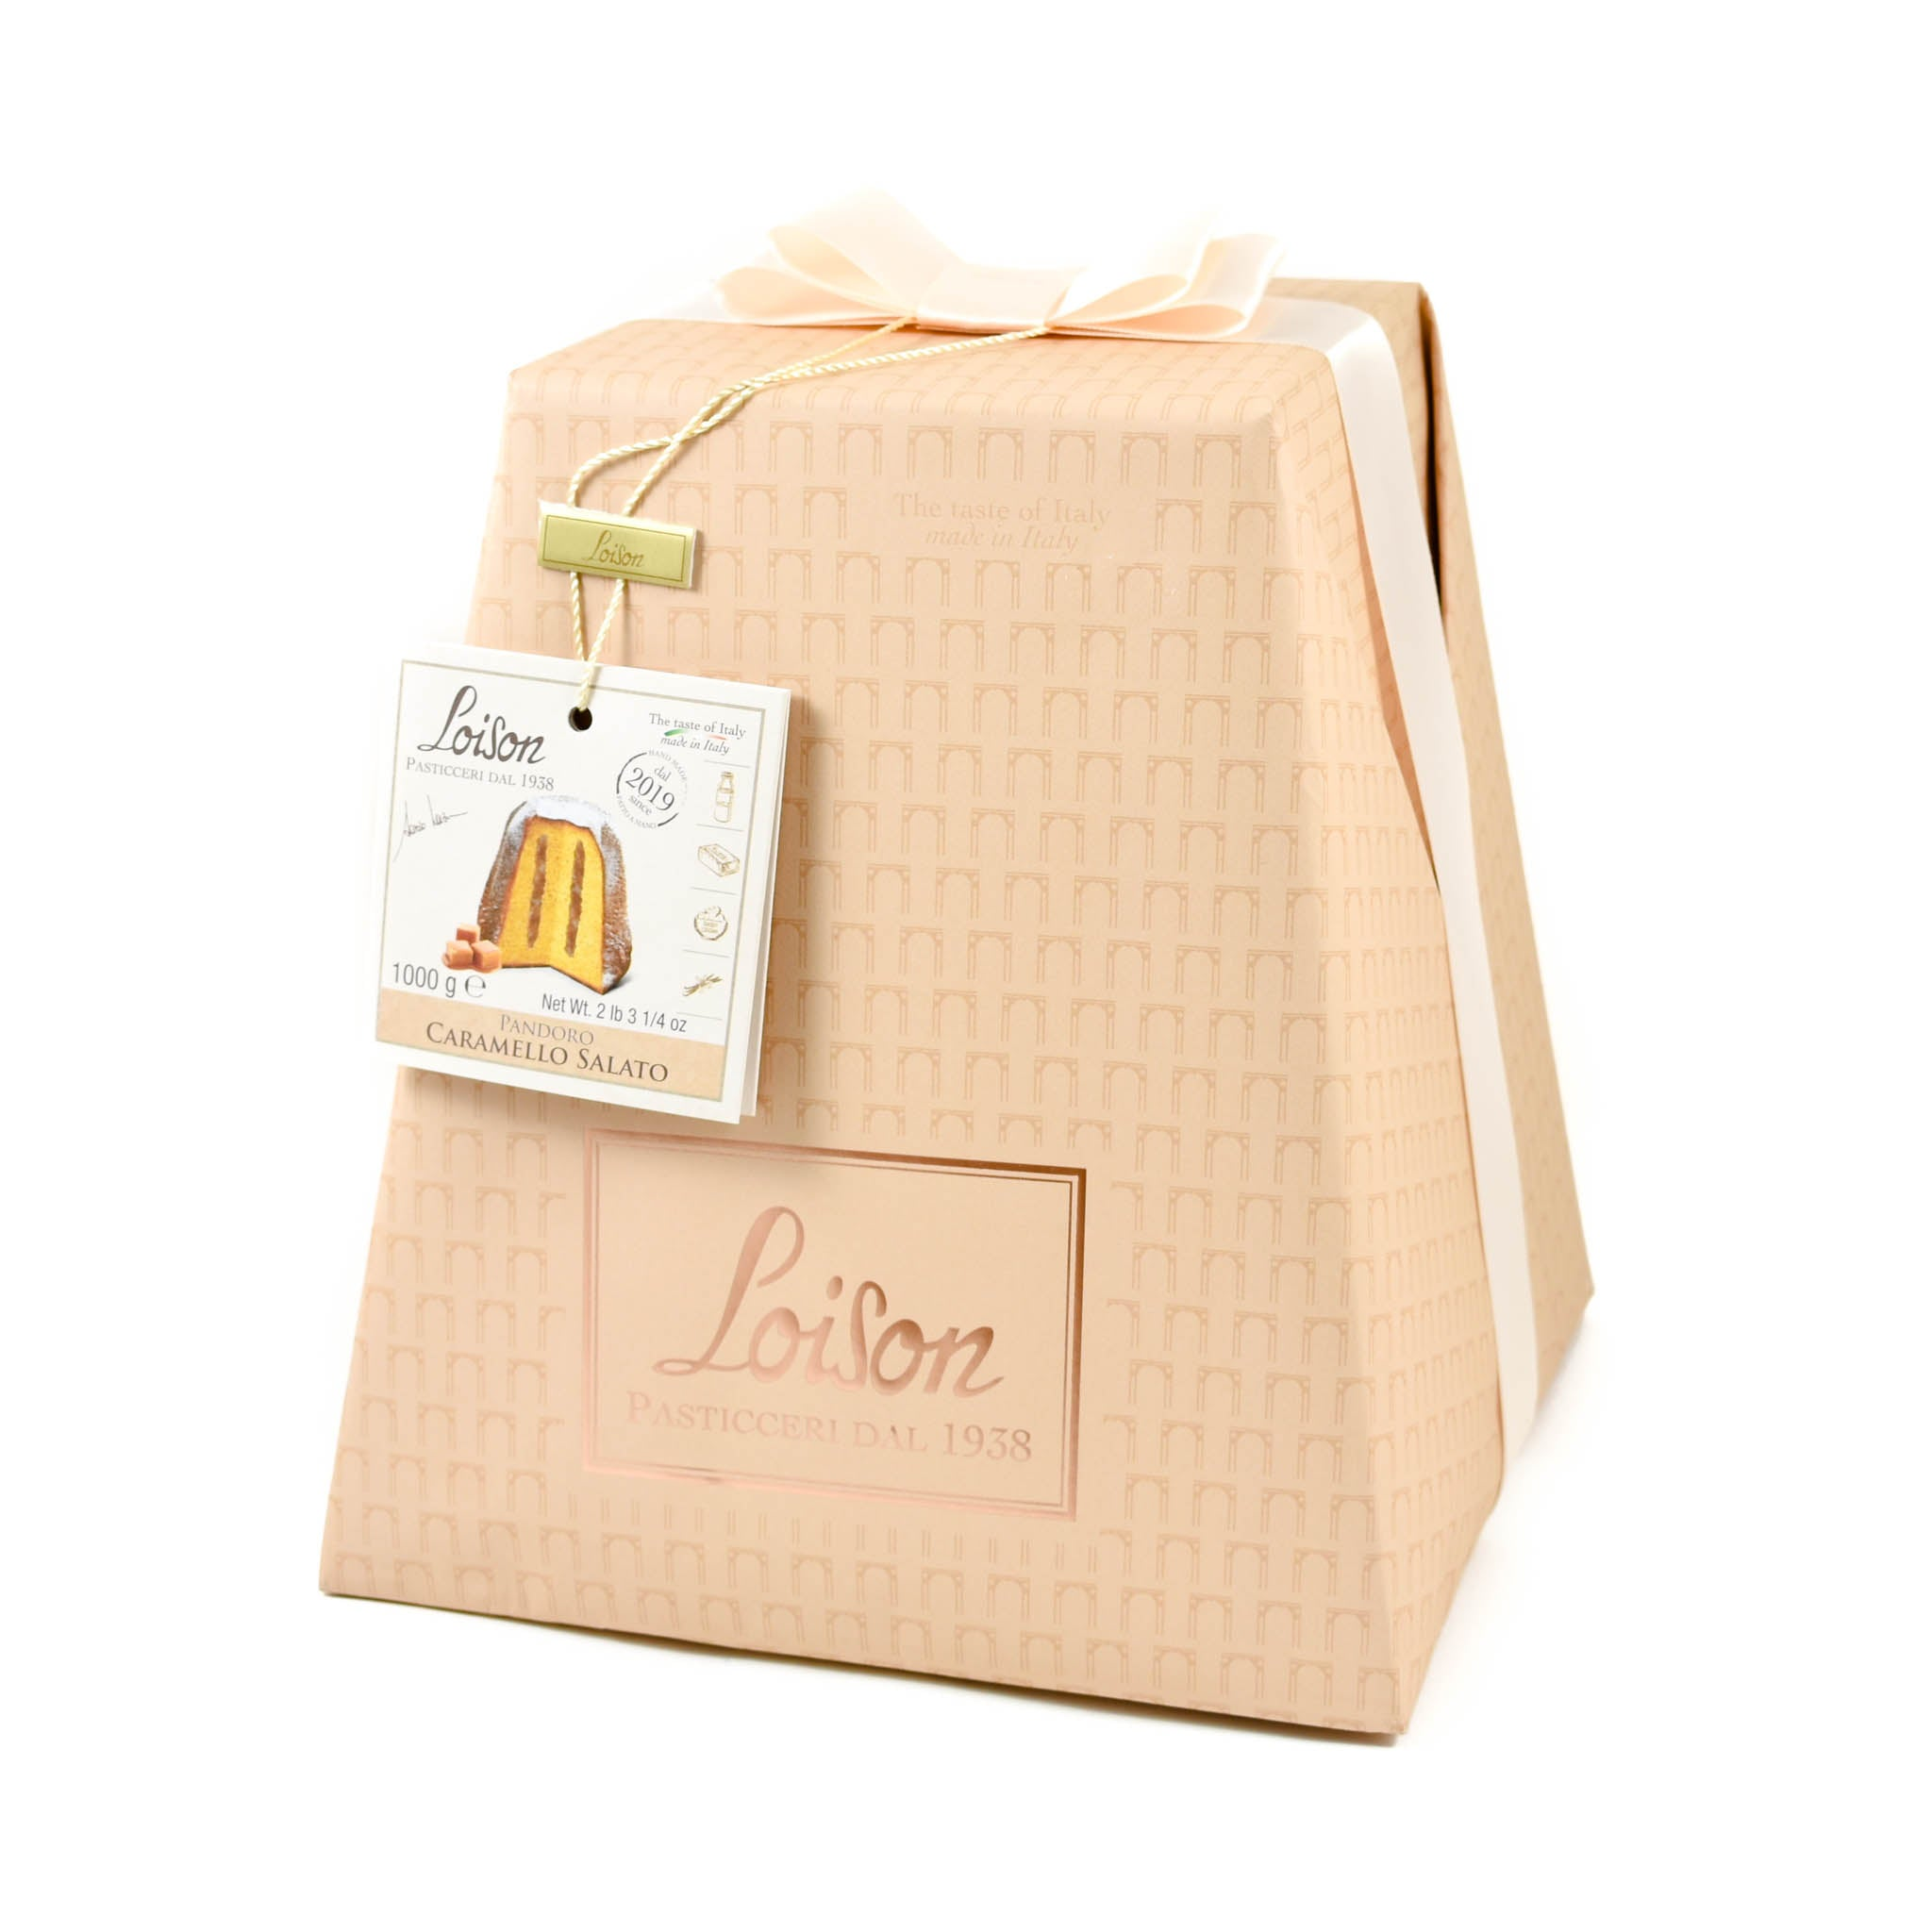 Loison Salted Caramel Pandoro 1kg Ingredients Chocolate Bars & Confectionery Italian Food Panettone & Pandoro